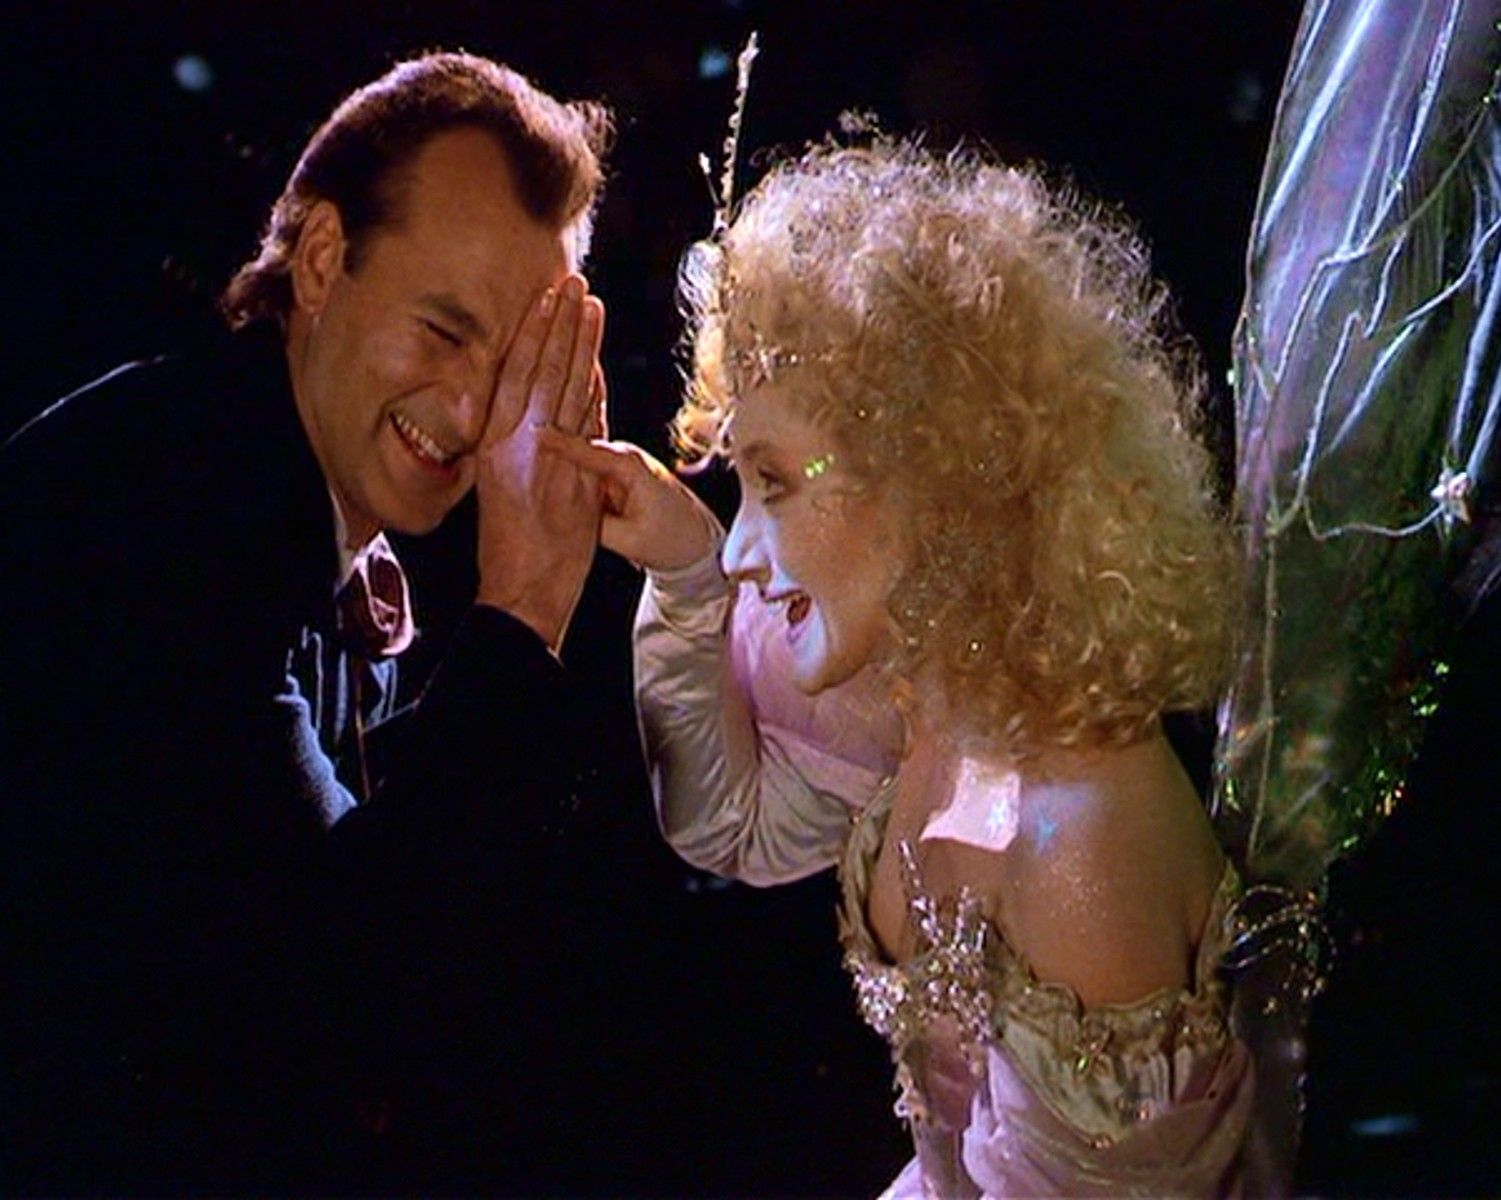 Scrooged ~ Now people say I'm a lot like that fairy, but I'm not ...